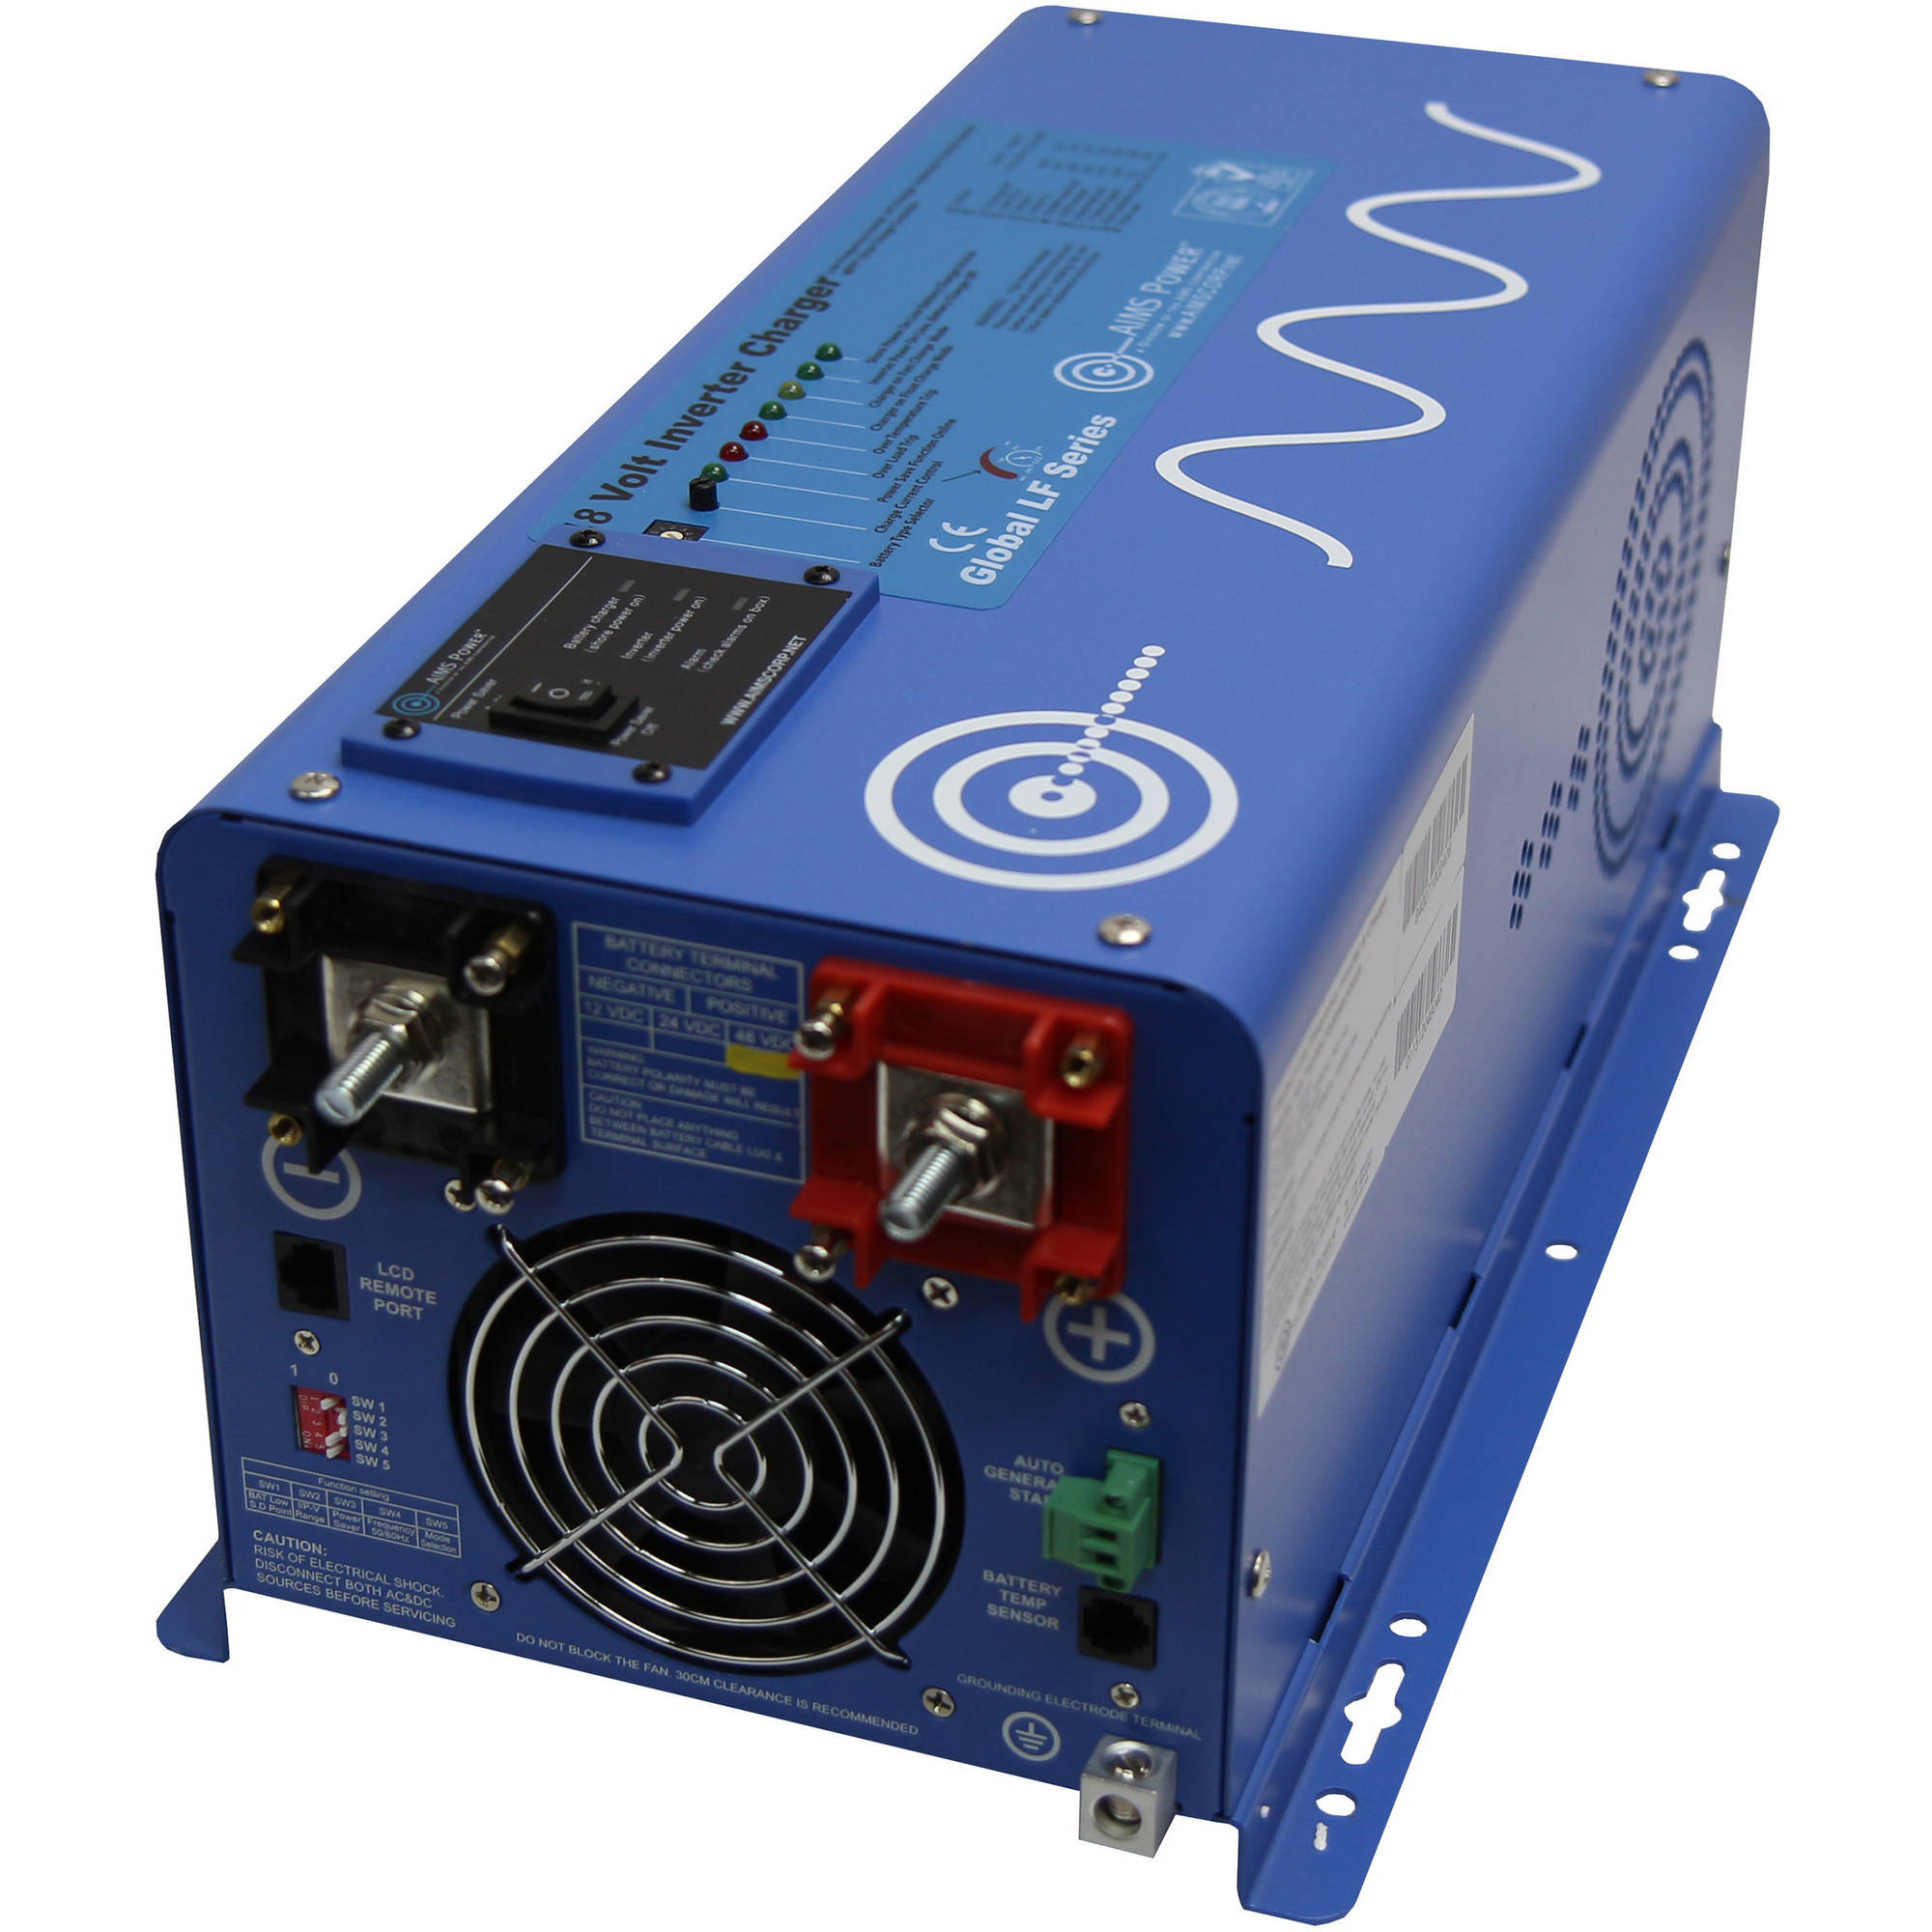 AIMS Power 2000W 48 Volt Pure Sine Inverter Charger